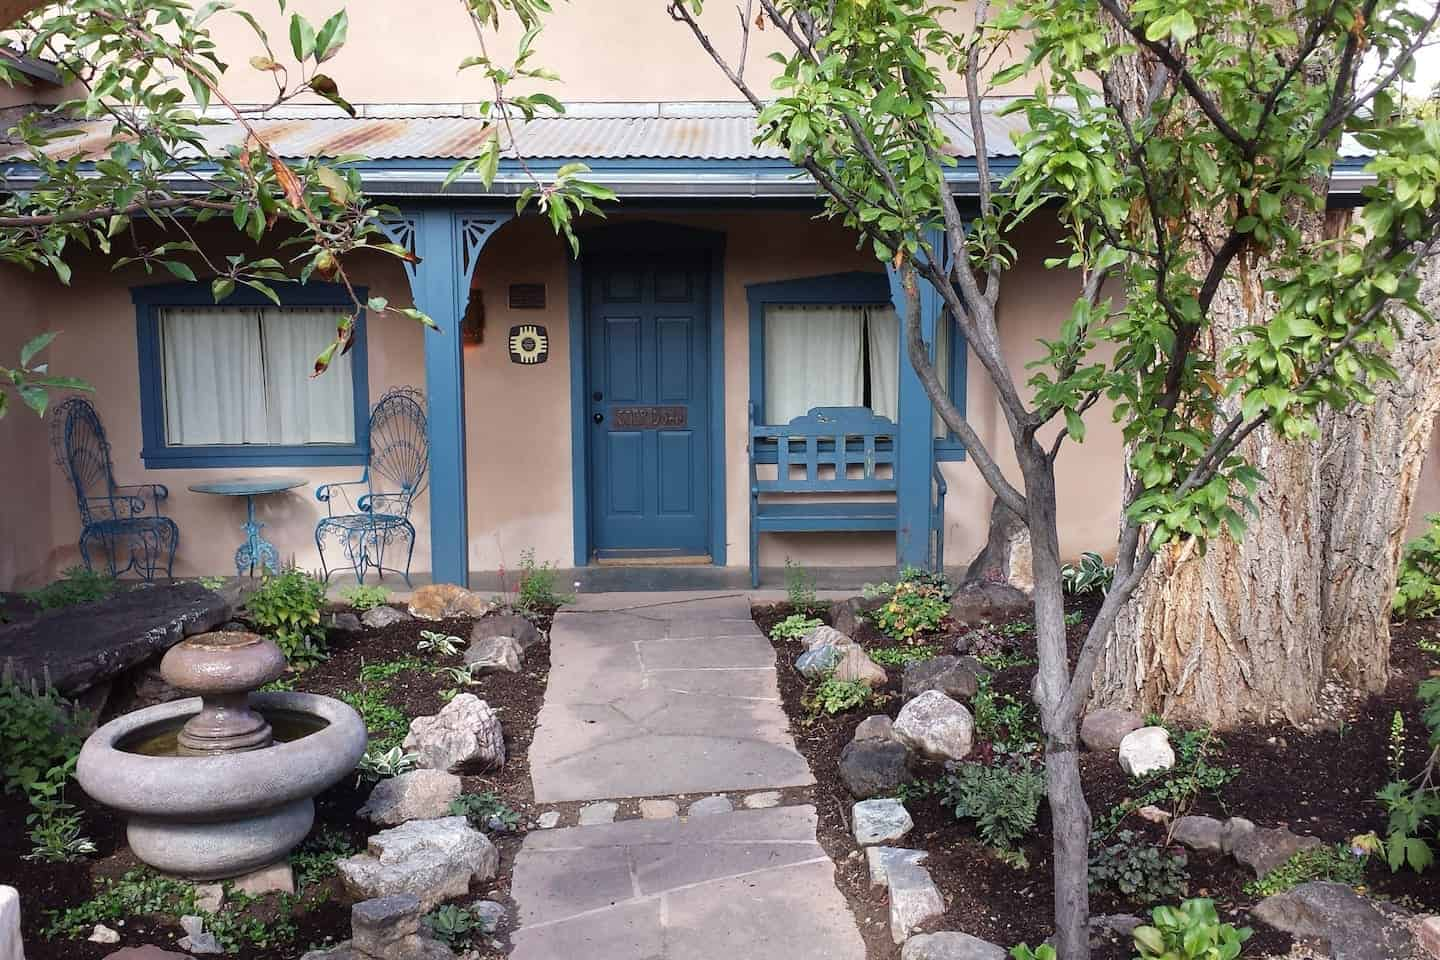 Image of Airbnb rental in Taos, New Mexico